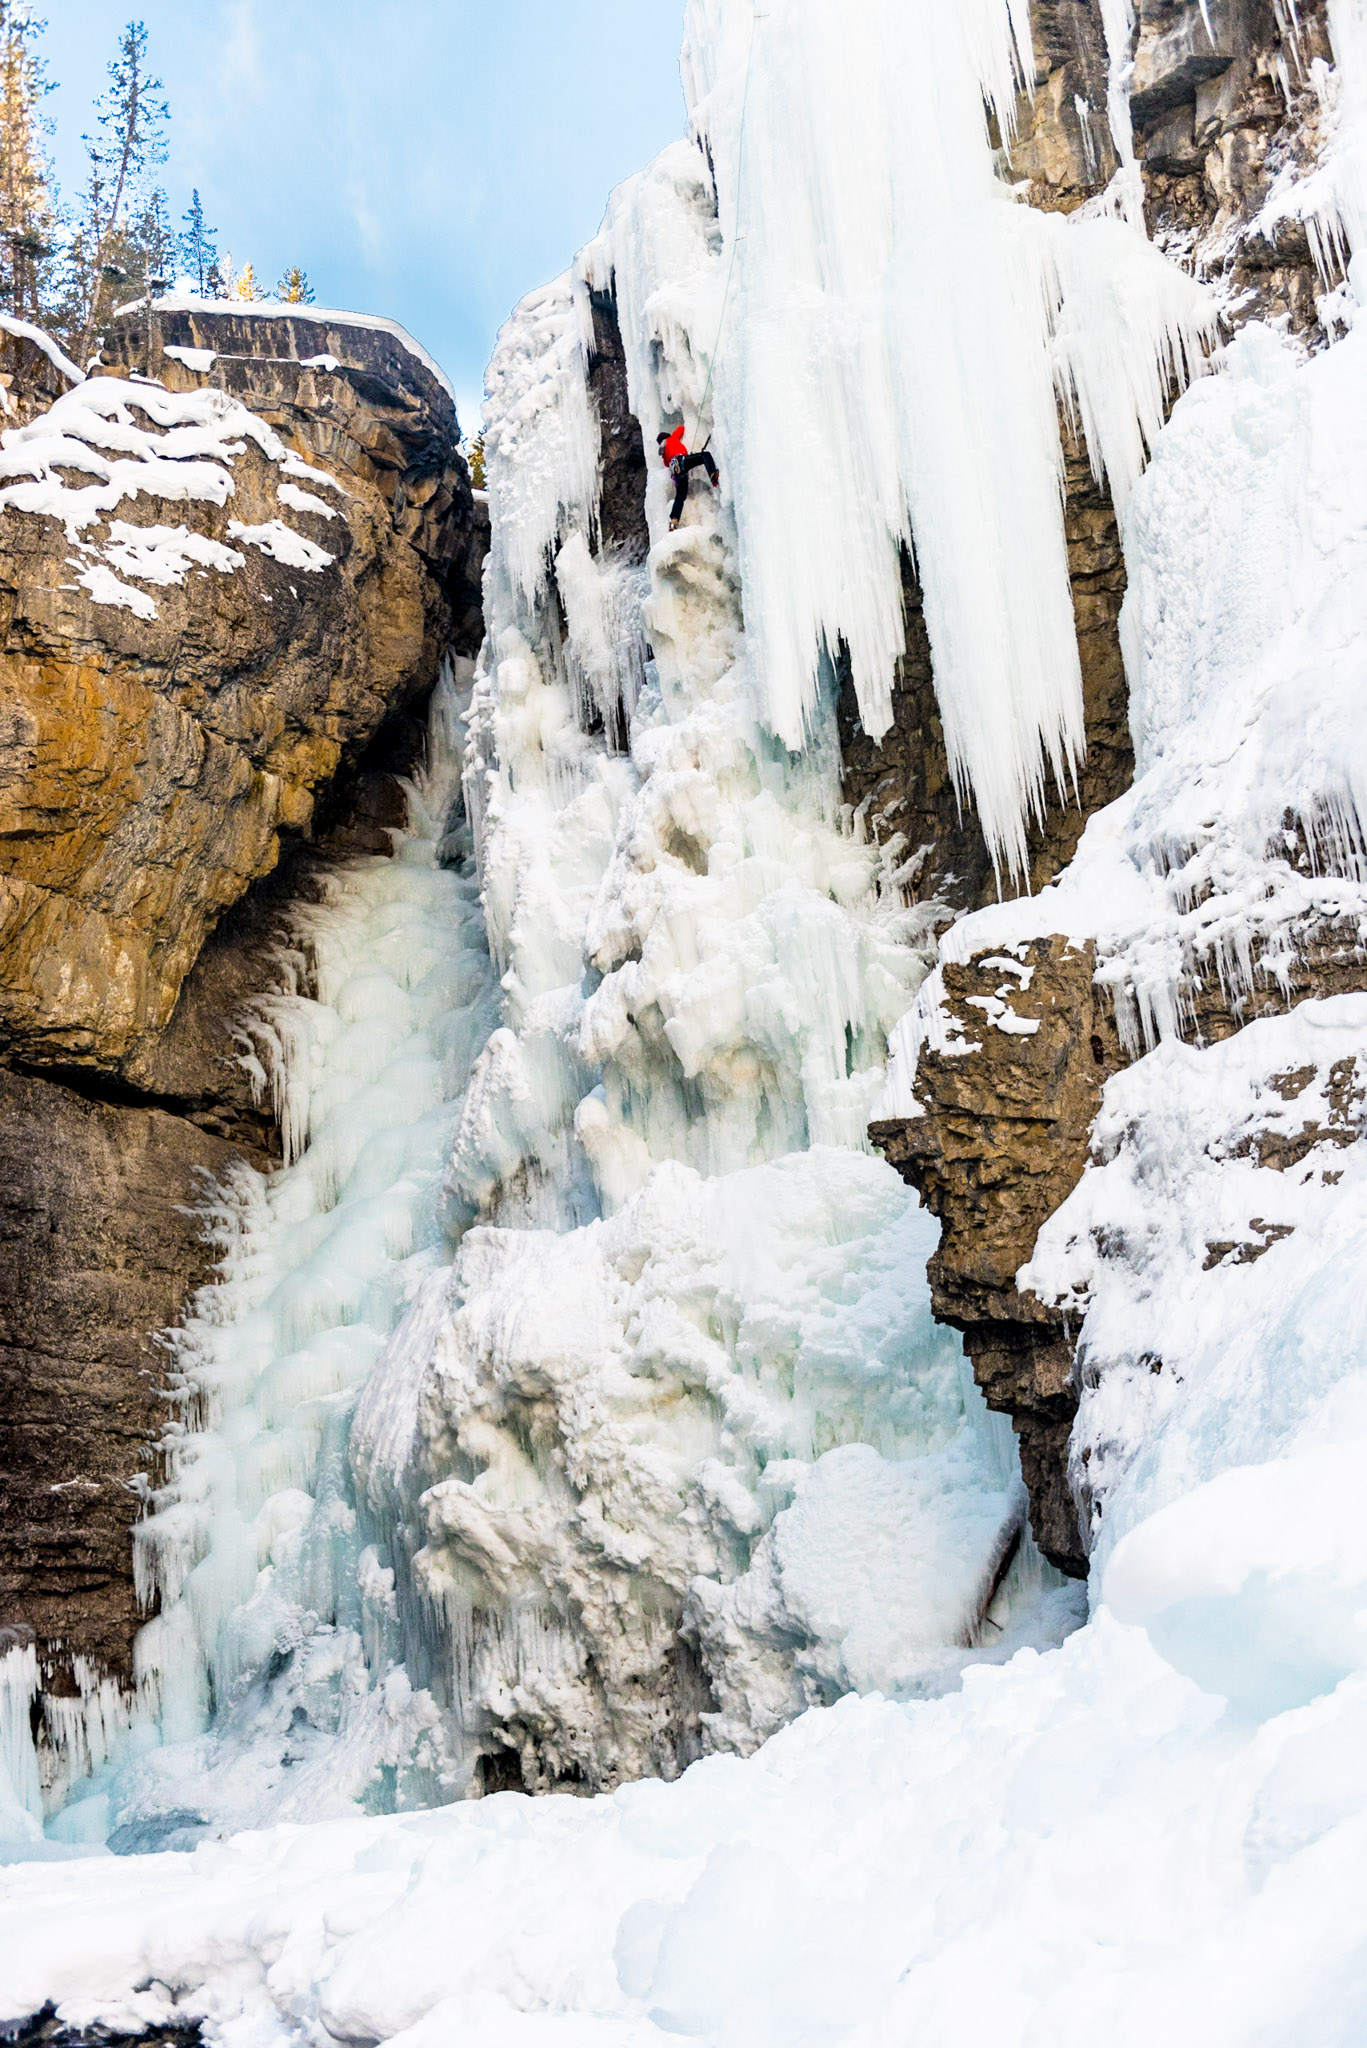 Chelsea Czibere - January 25, 2019 - Johnston Canyon-23.jpg